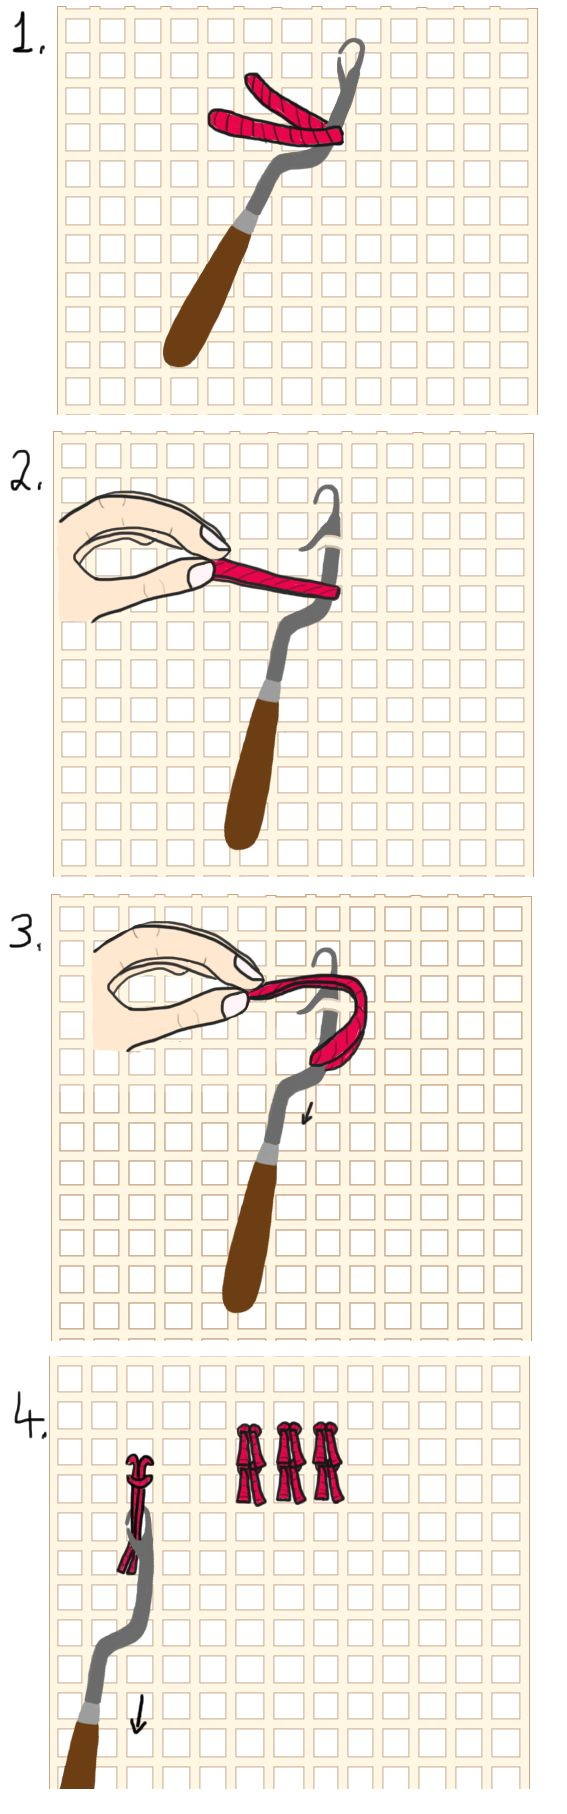 ★ Latch Hook Rug Making   How to Make Your Own Rug   Tutorials & Projects Roundup ★